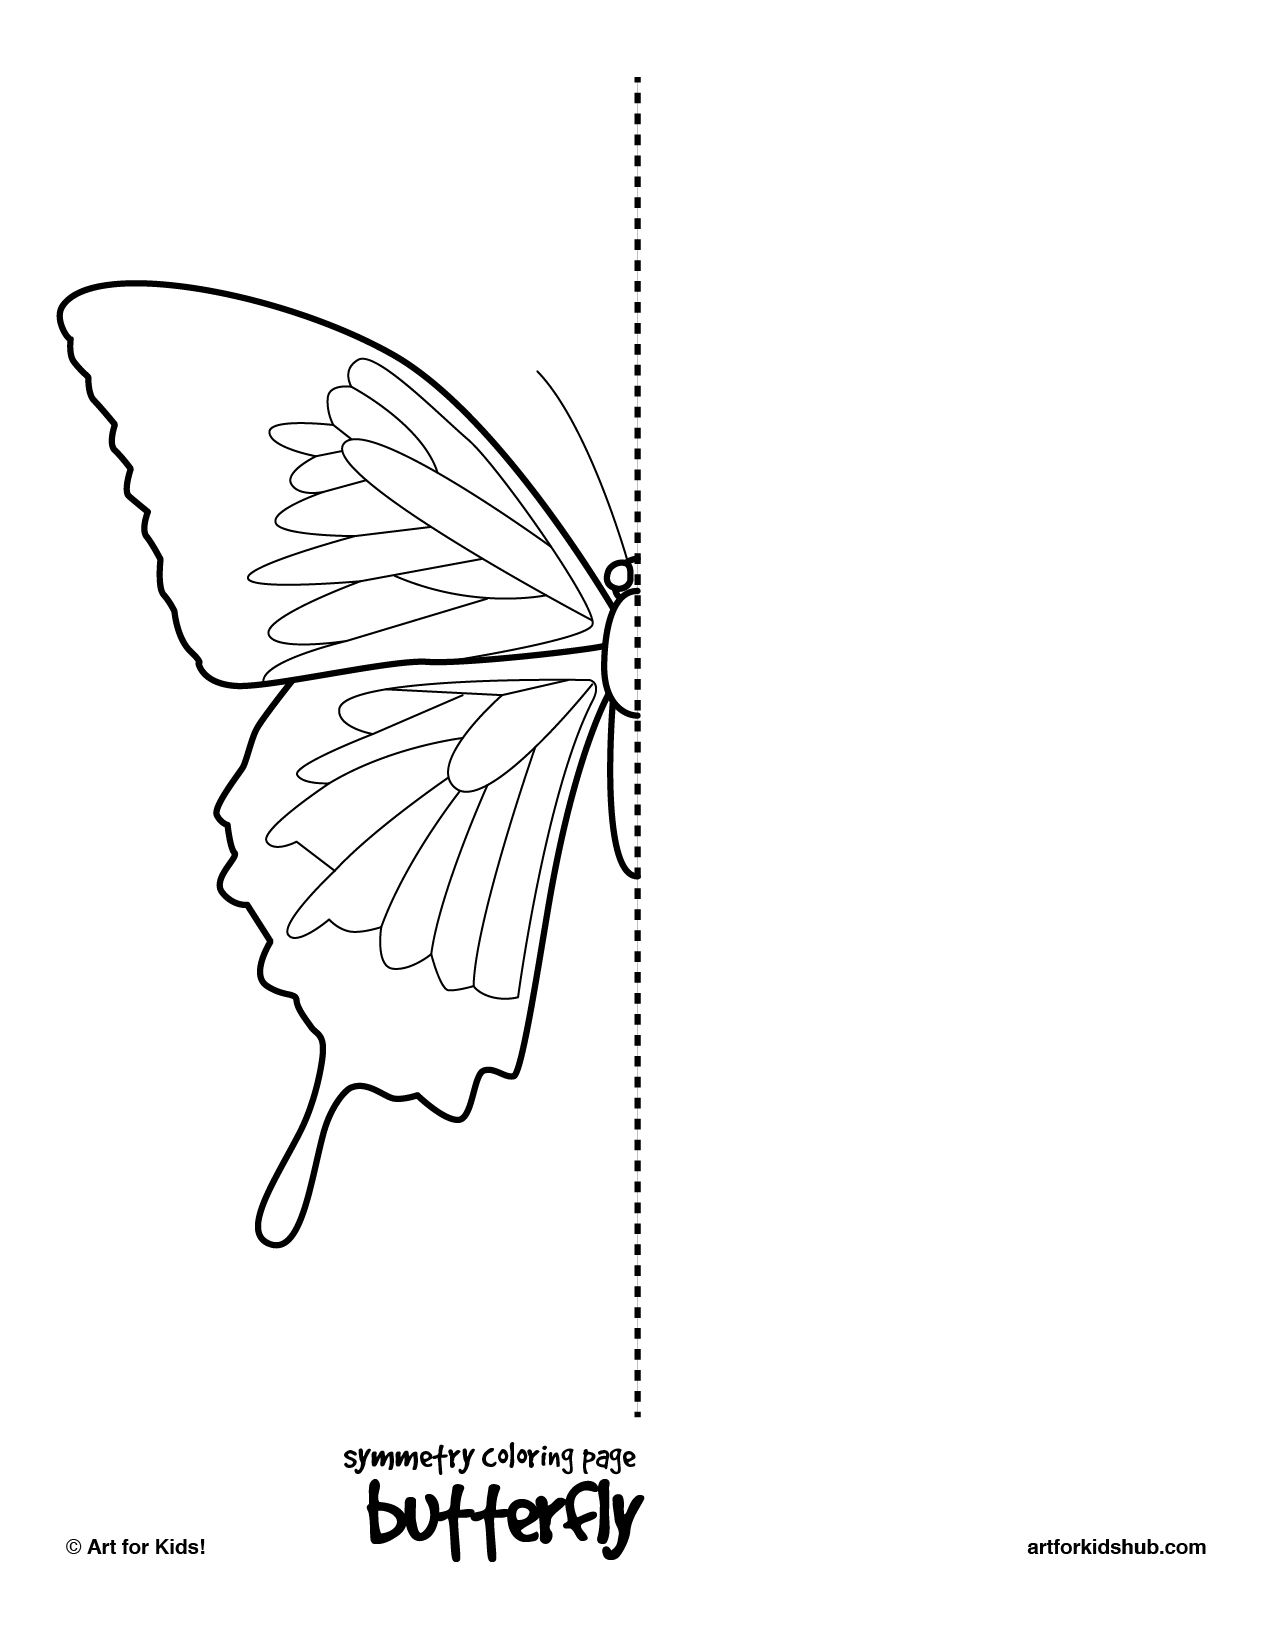 Uncategorized Animal Symmetry Worksheet 10 free coloring pages bug symmetry art for kids hub hub